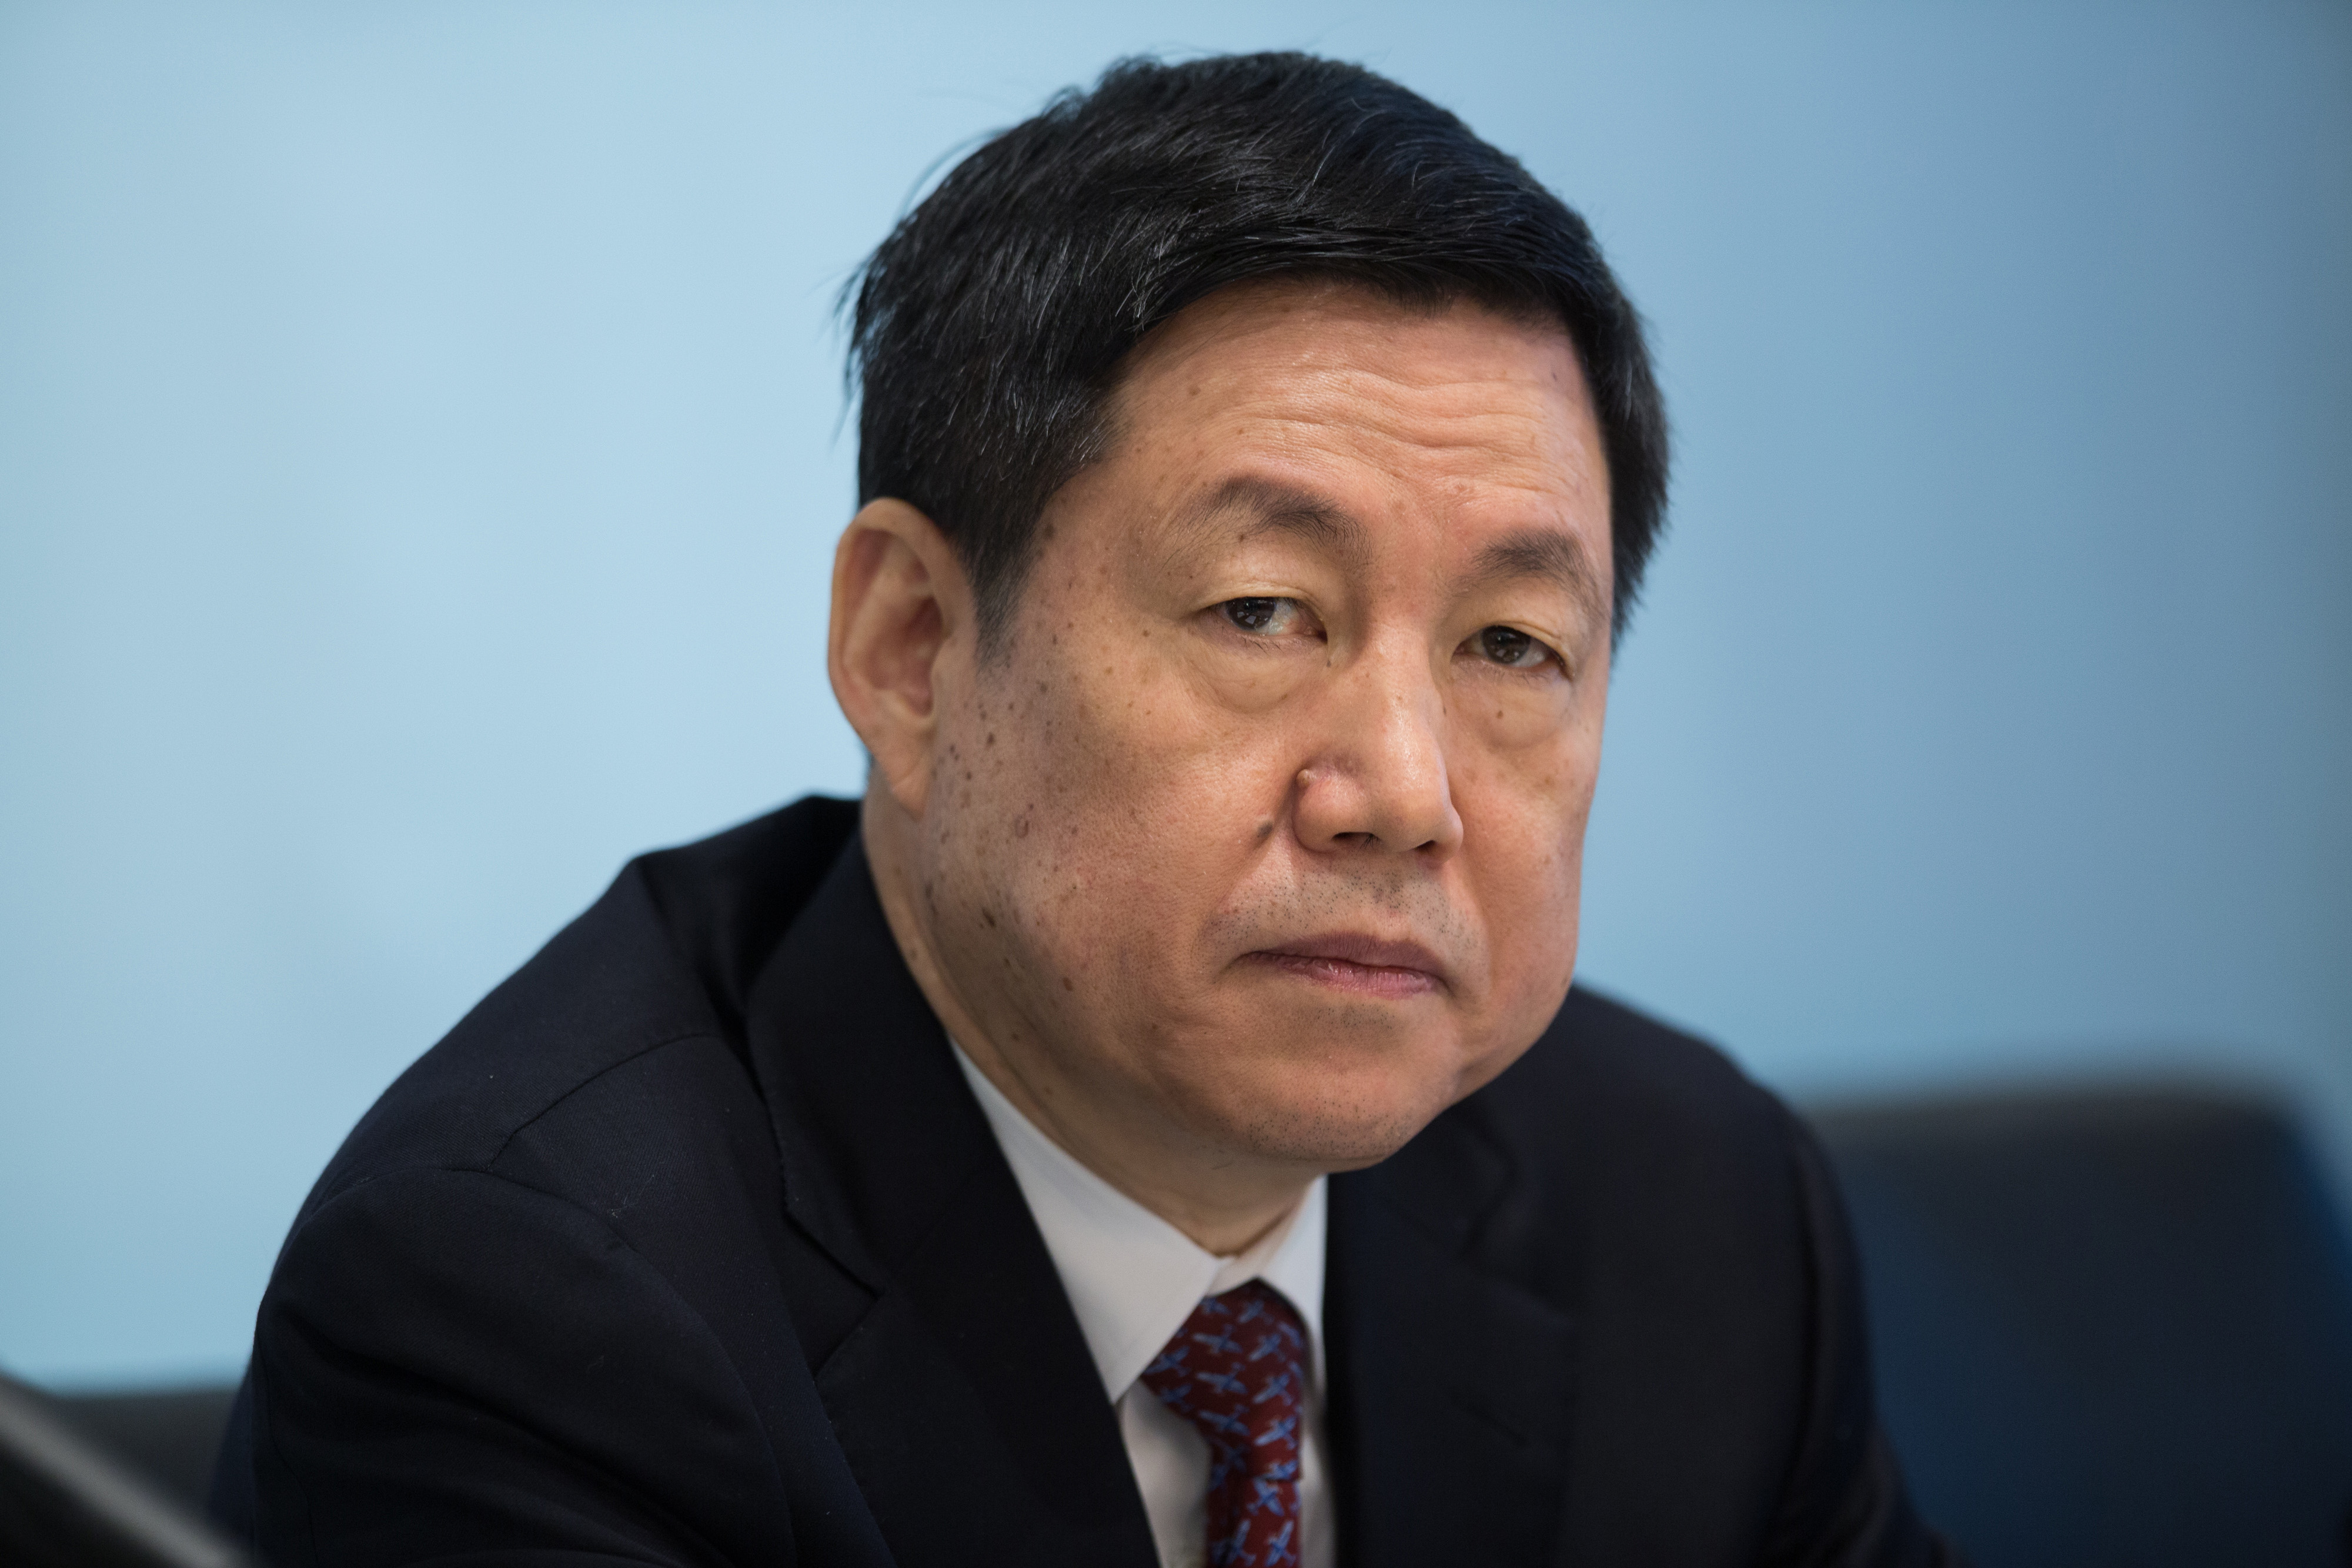 Agricultural Bank Of China Ltd. Vice Chairman And President Attends Earnings News Conference